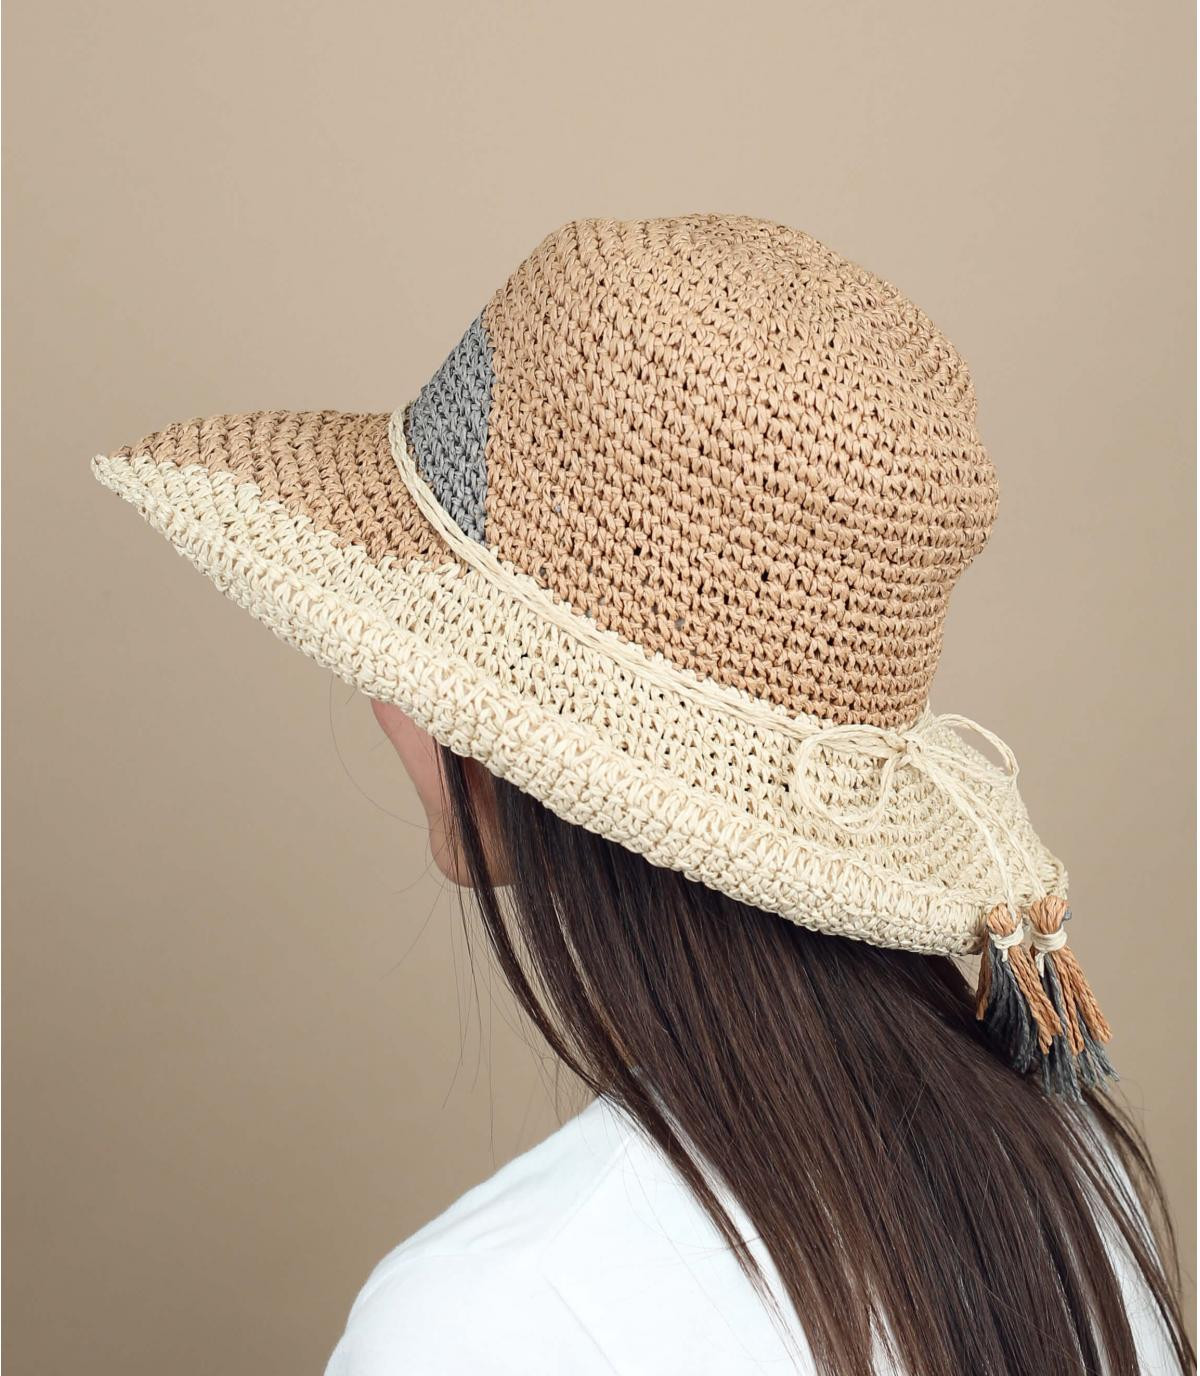 multicoloured wide-brimmed straw hat